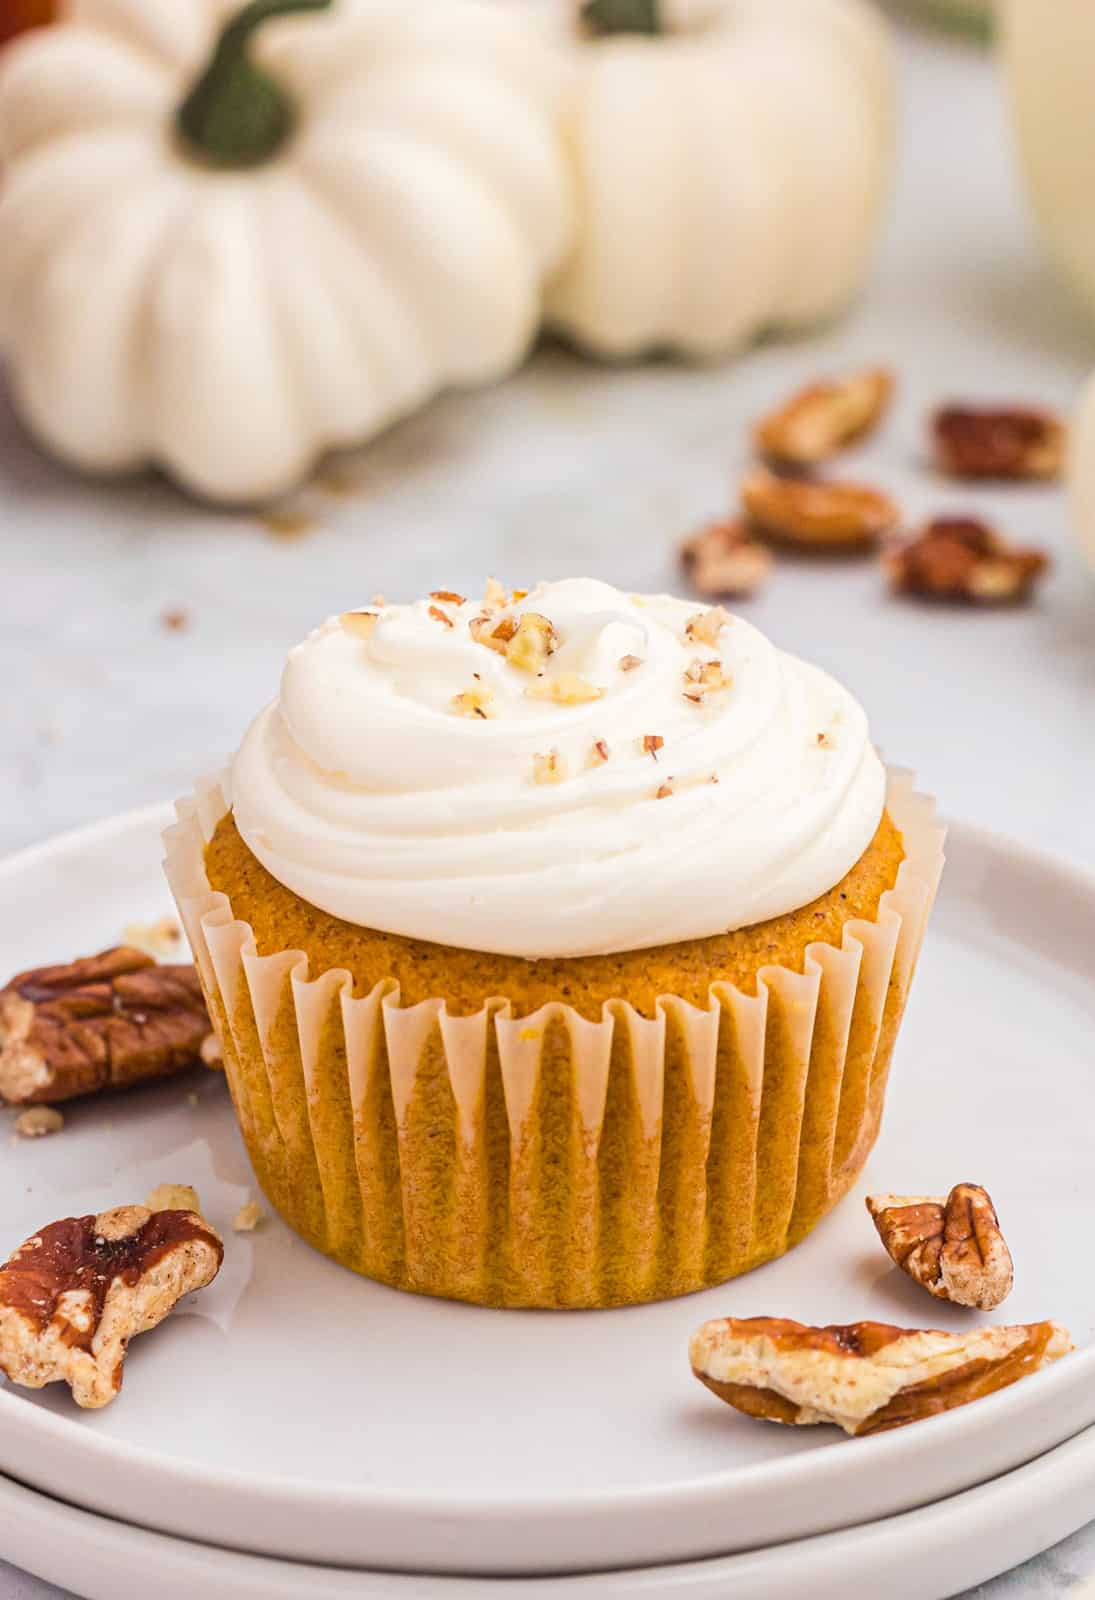 Close up of one Pumpkin Cupcake on white plate with chopped nuts.